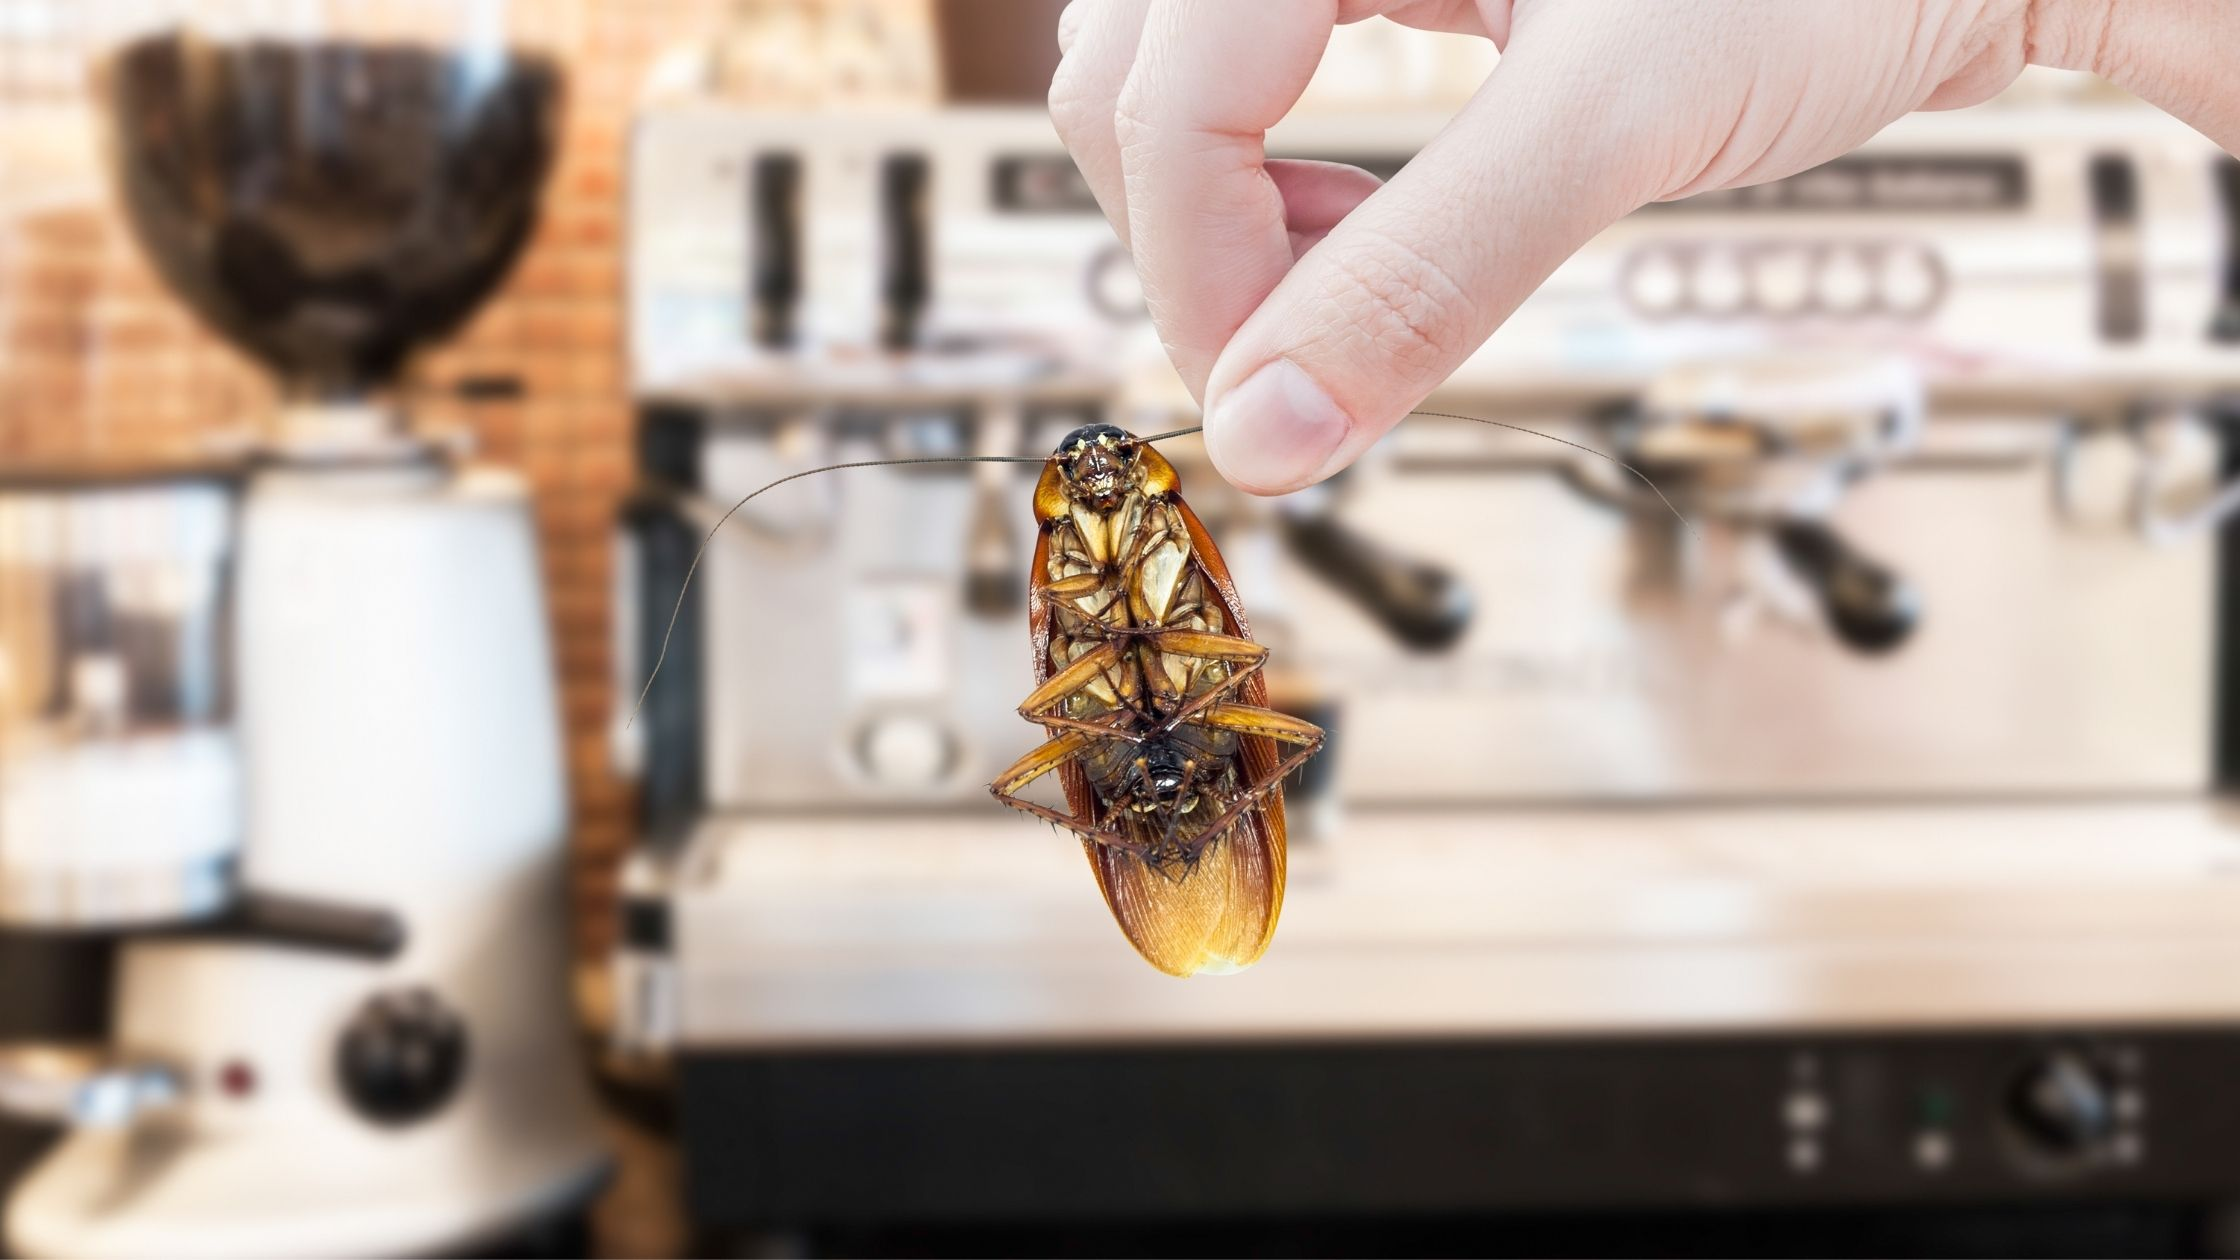 These Cockroach Facts Are The Best Pest Control Motivation